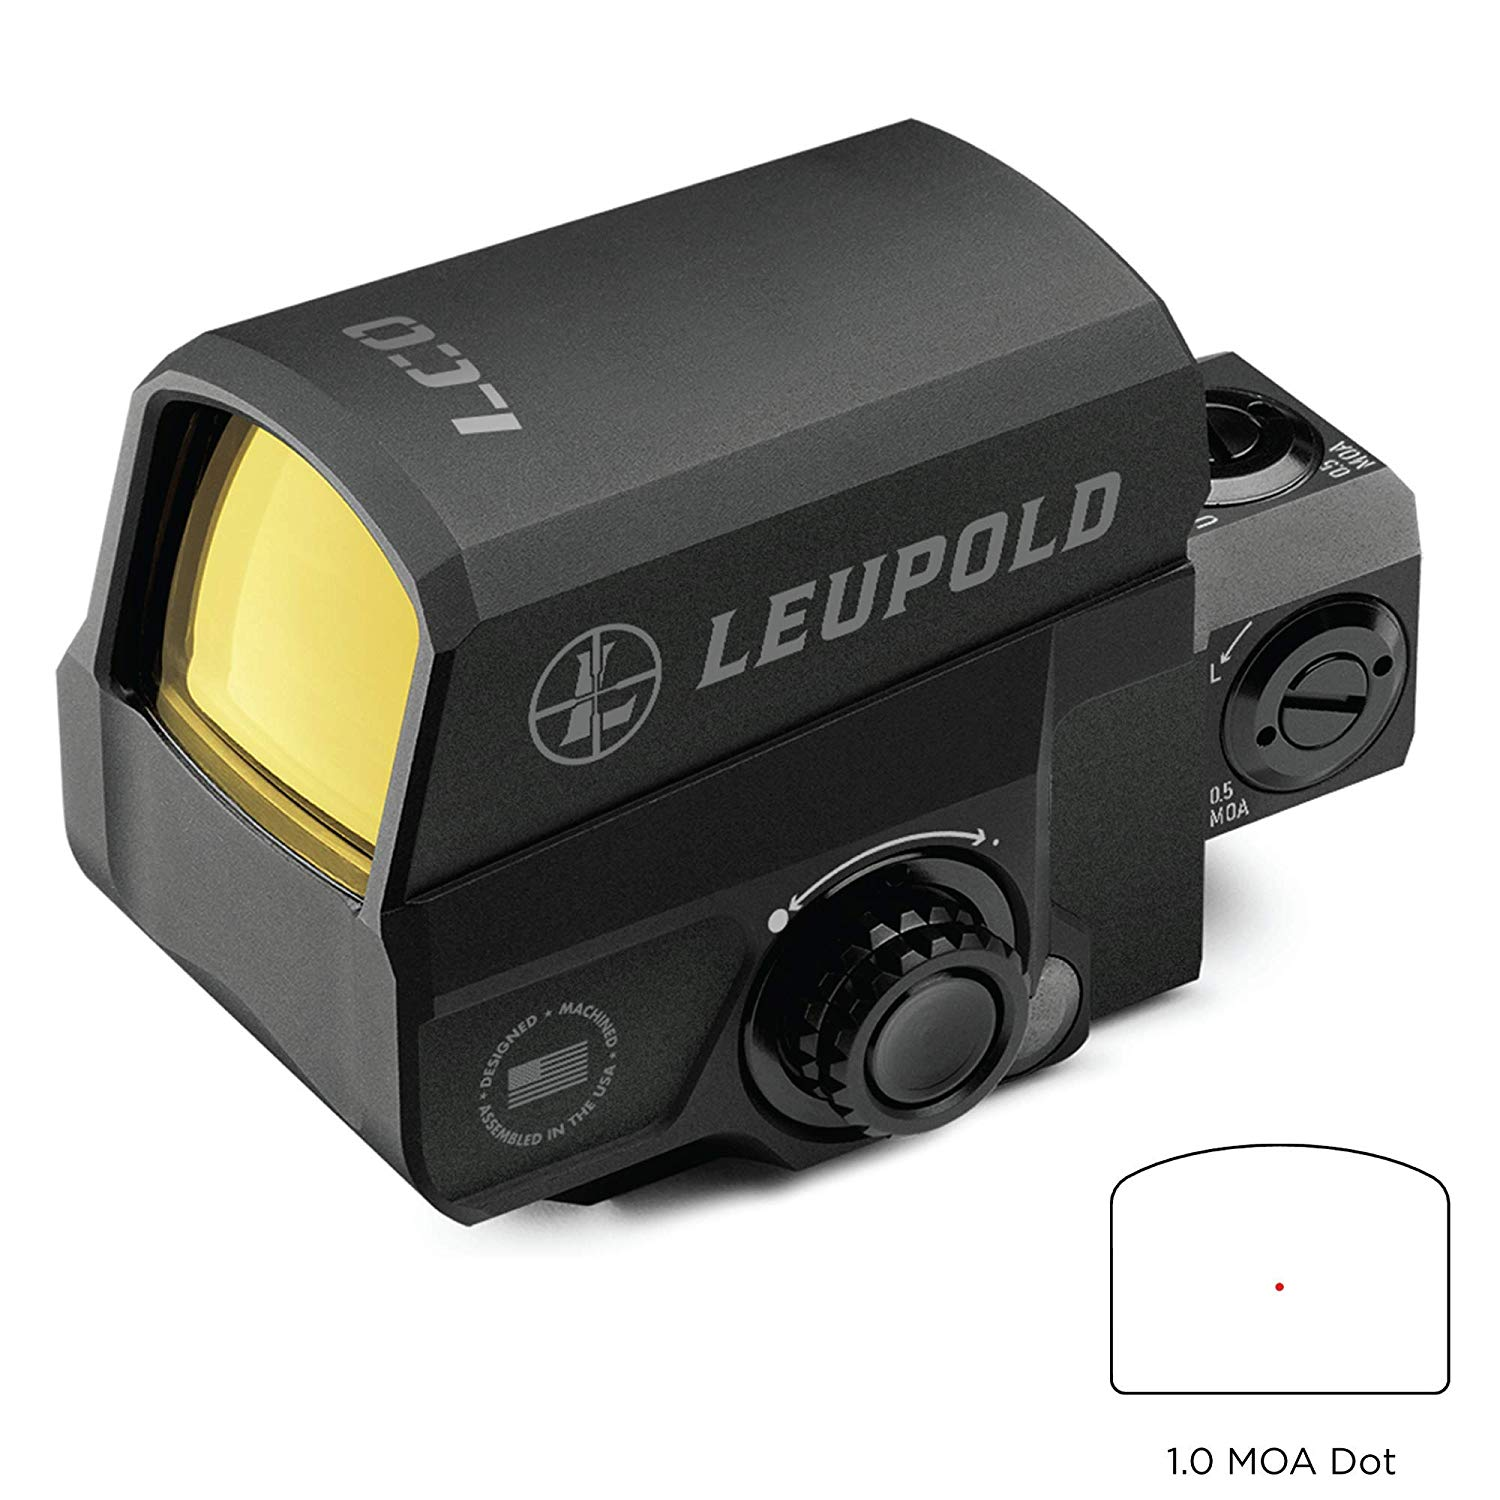 Leupold LCO Review